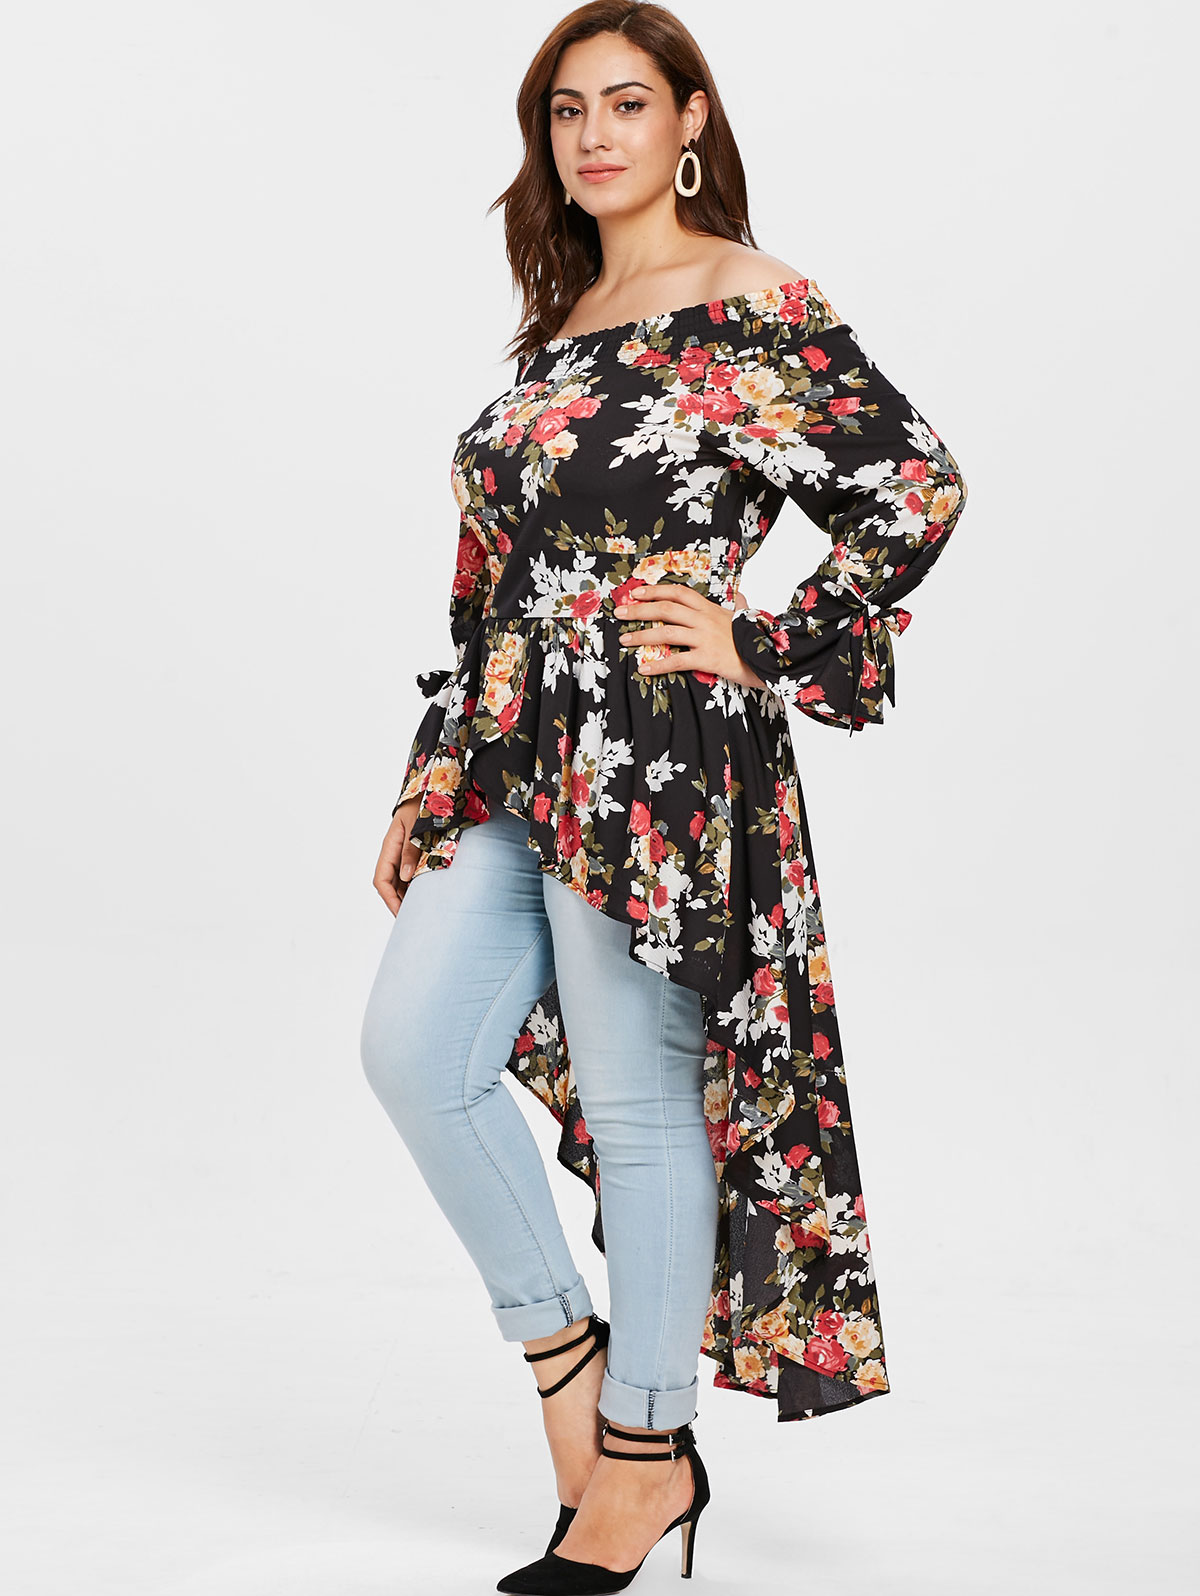 AZULINA Plus Size Off The Shoulder Floral High Low Long Blouse Women Tops  Autumn Casual Blouses Shirts Big Size Clothing Blusas-in Blouses   Shirts  from ... fd6650740c7e